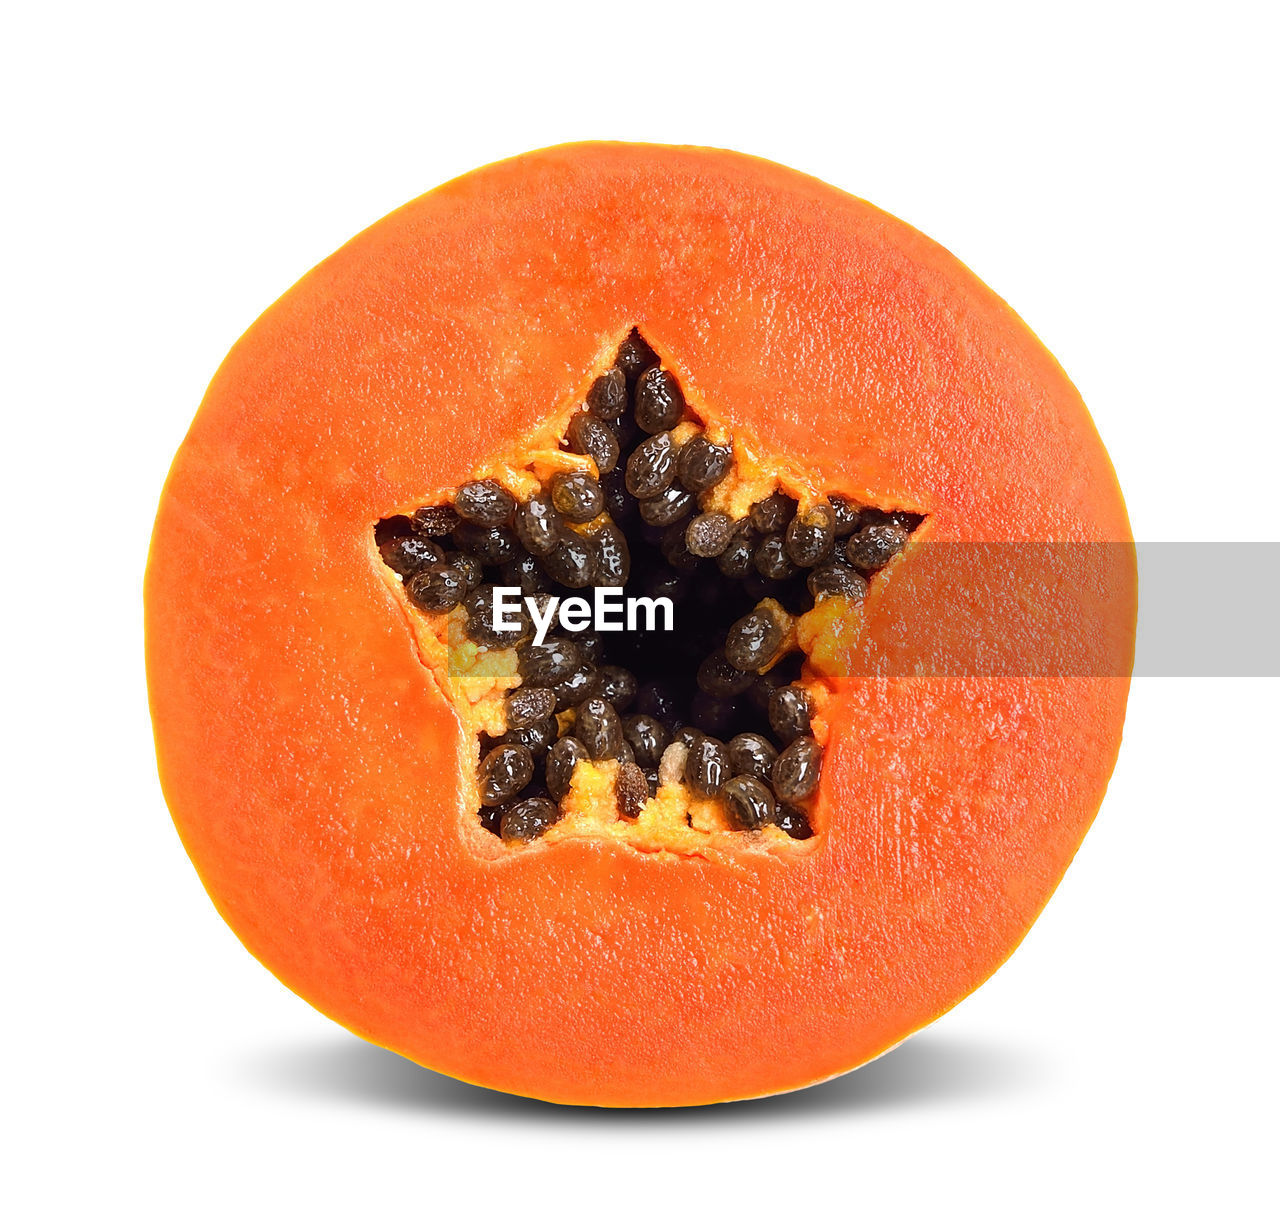 food, food and drink, studio shot, orange color, white background, fruit, freshness, healthy eating, indoors, still life, wellbeing, papaya, close-up, cut out, cross section, tropical fruit, seed, no people, single object, slice, orange, ripe